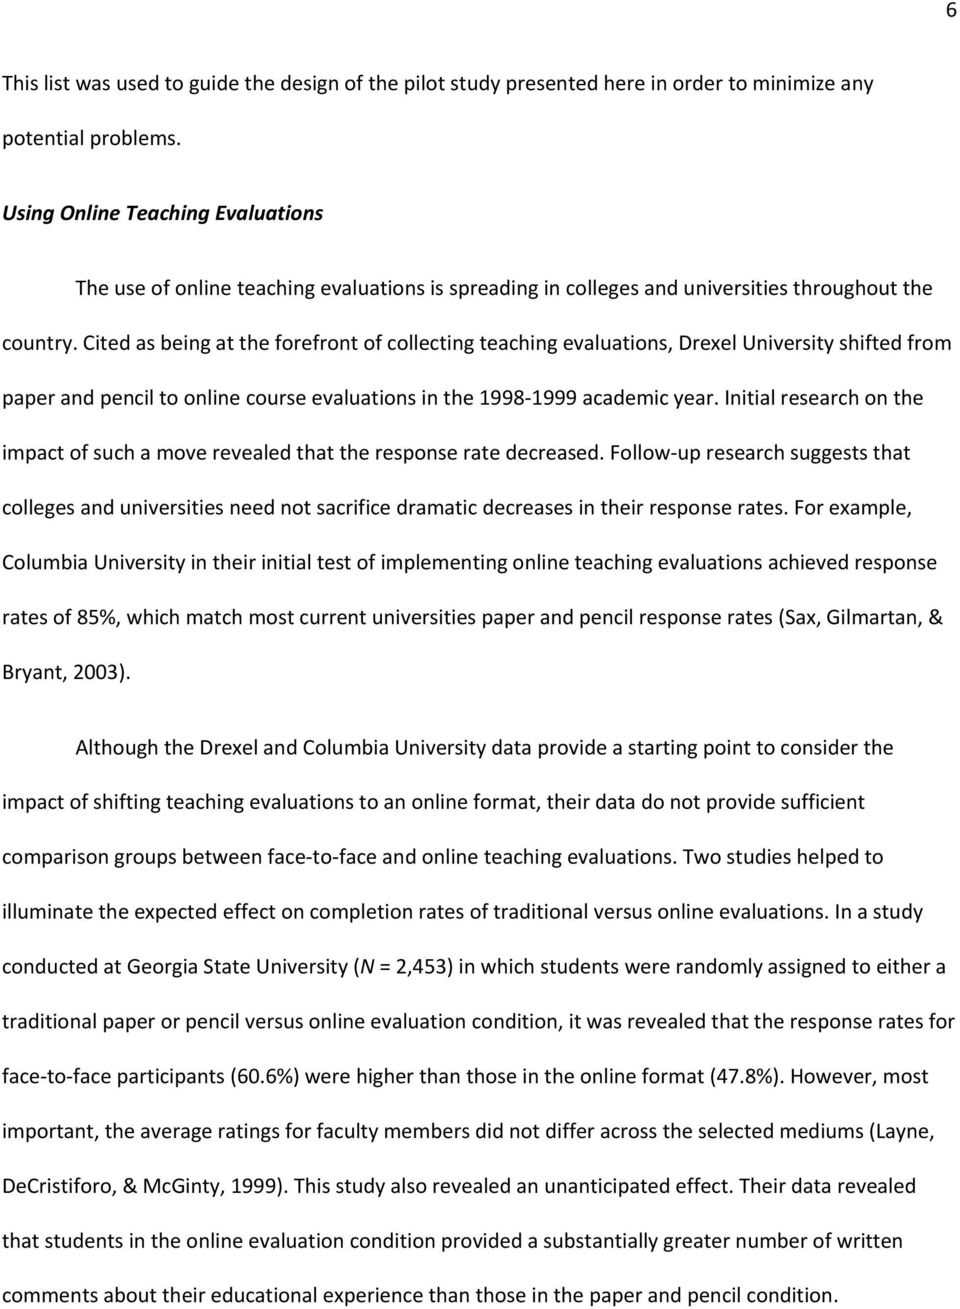 Cited as being at the forefront of collecting teaching evaluations, Drexel University shifted from paper and pencil to online course evaluations in the 1998-1999 academic year.